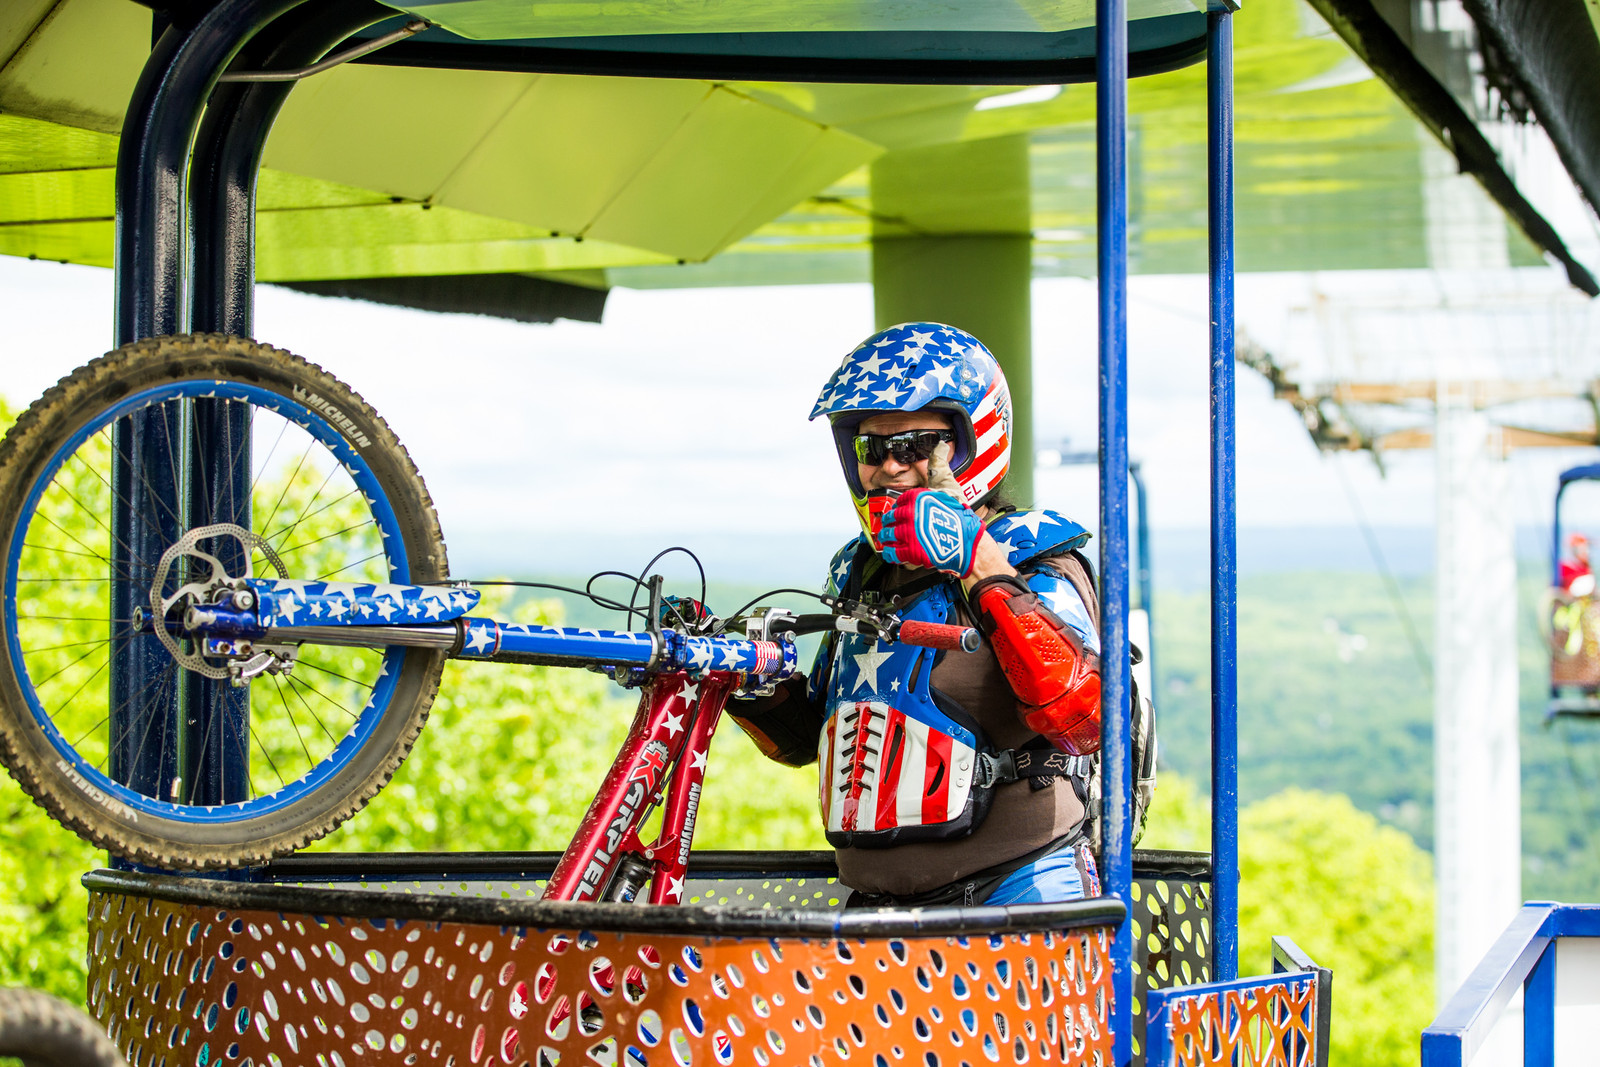 This guy is a Mountain Creek legend. Hit play on the audio to meet the star spangled hucker.